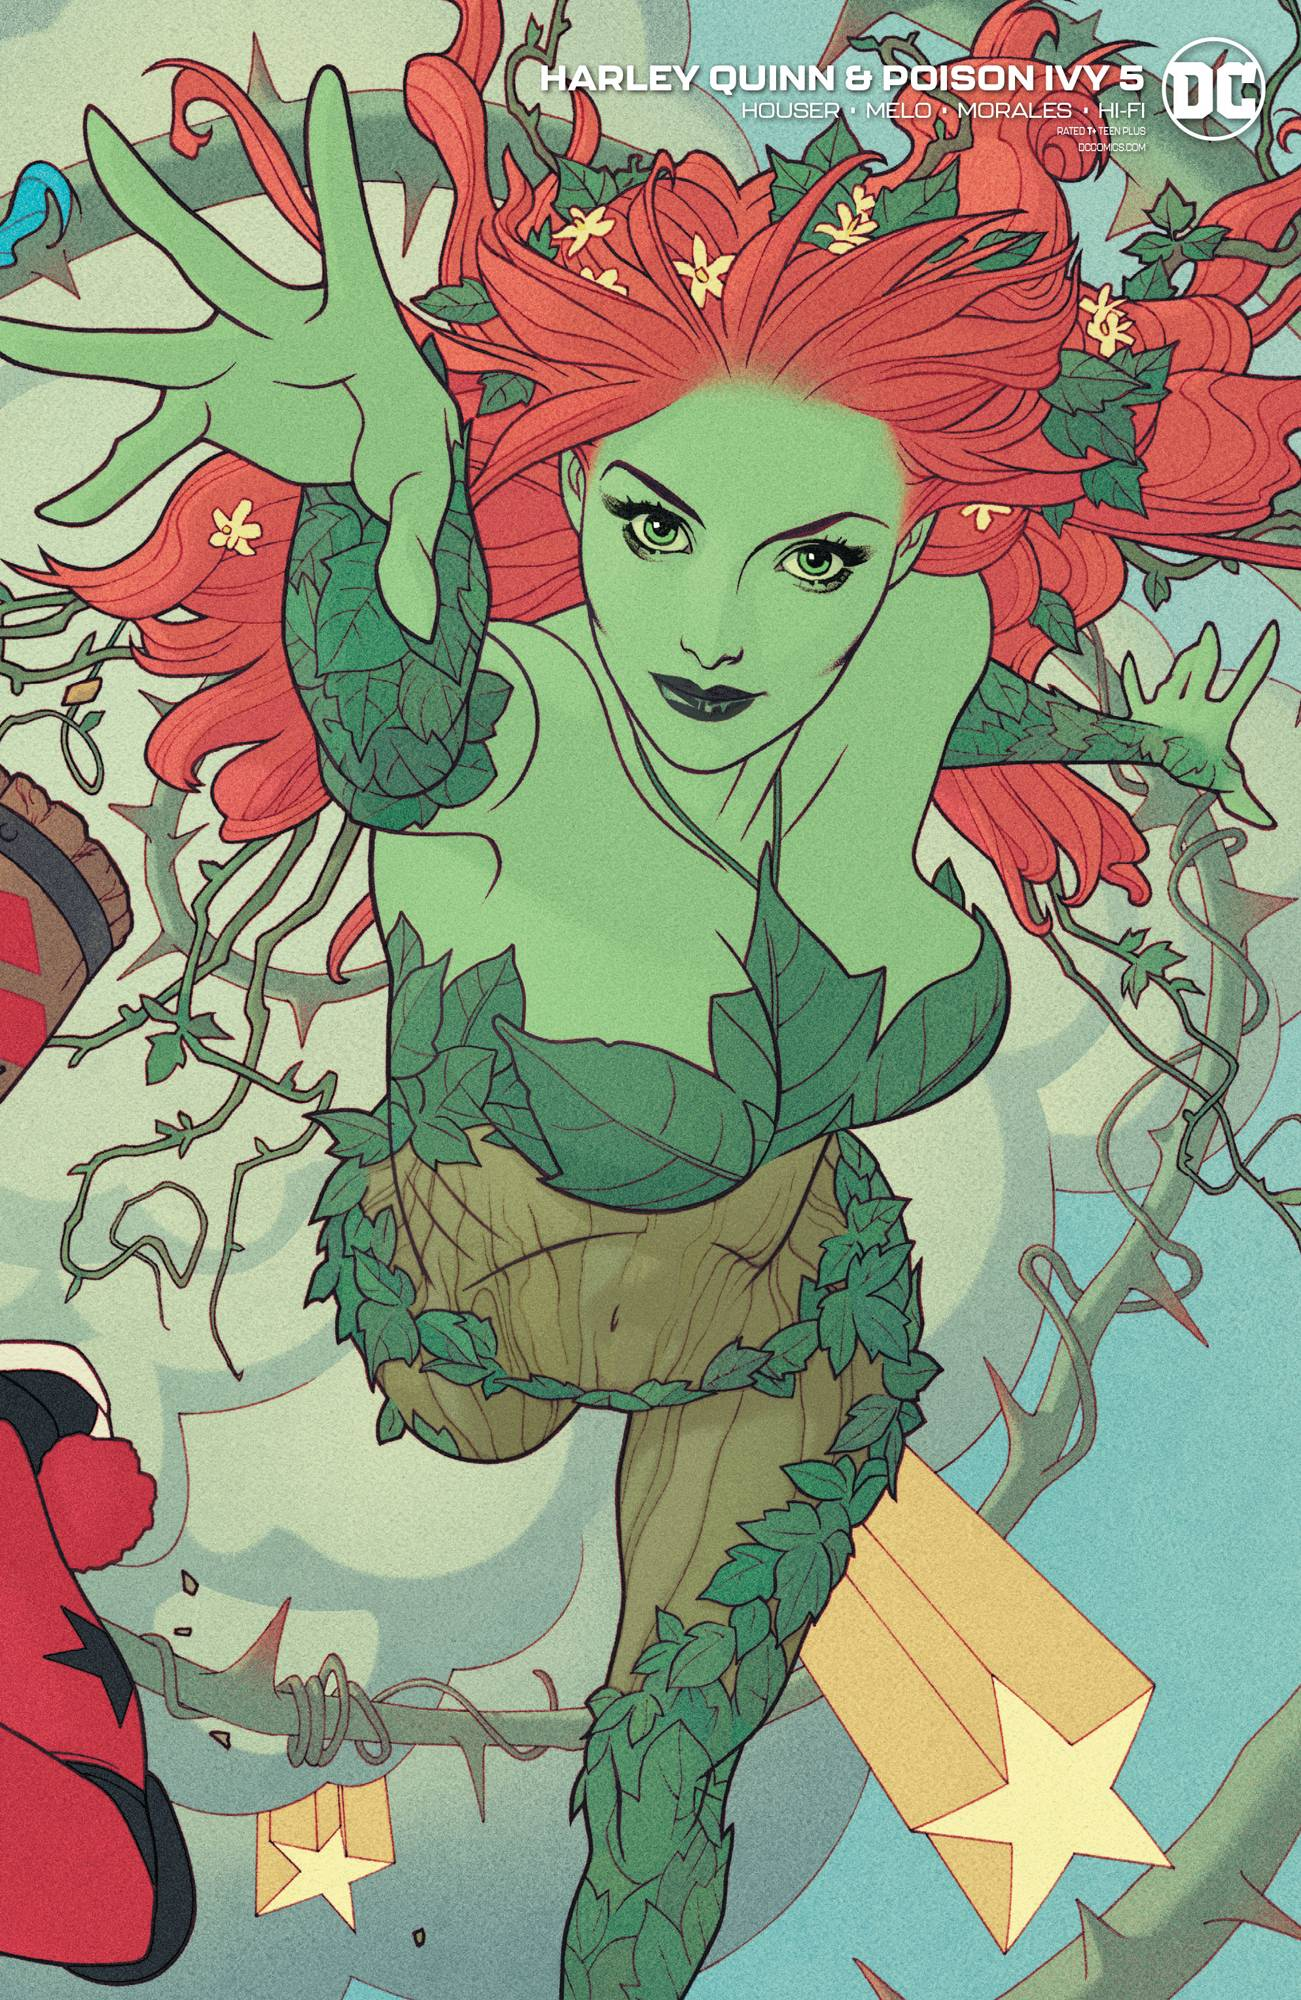 HARLEY QUINN & POISON IVY #5 (OF 6) CARD STOCK POISON IVY VA